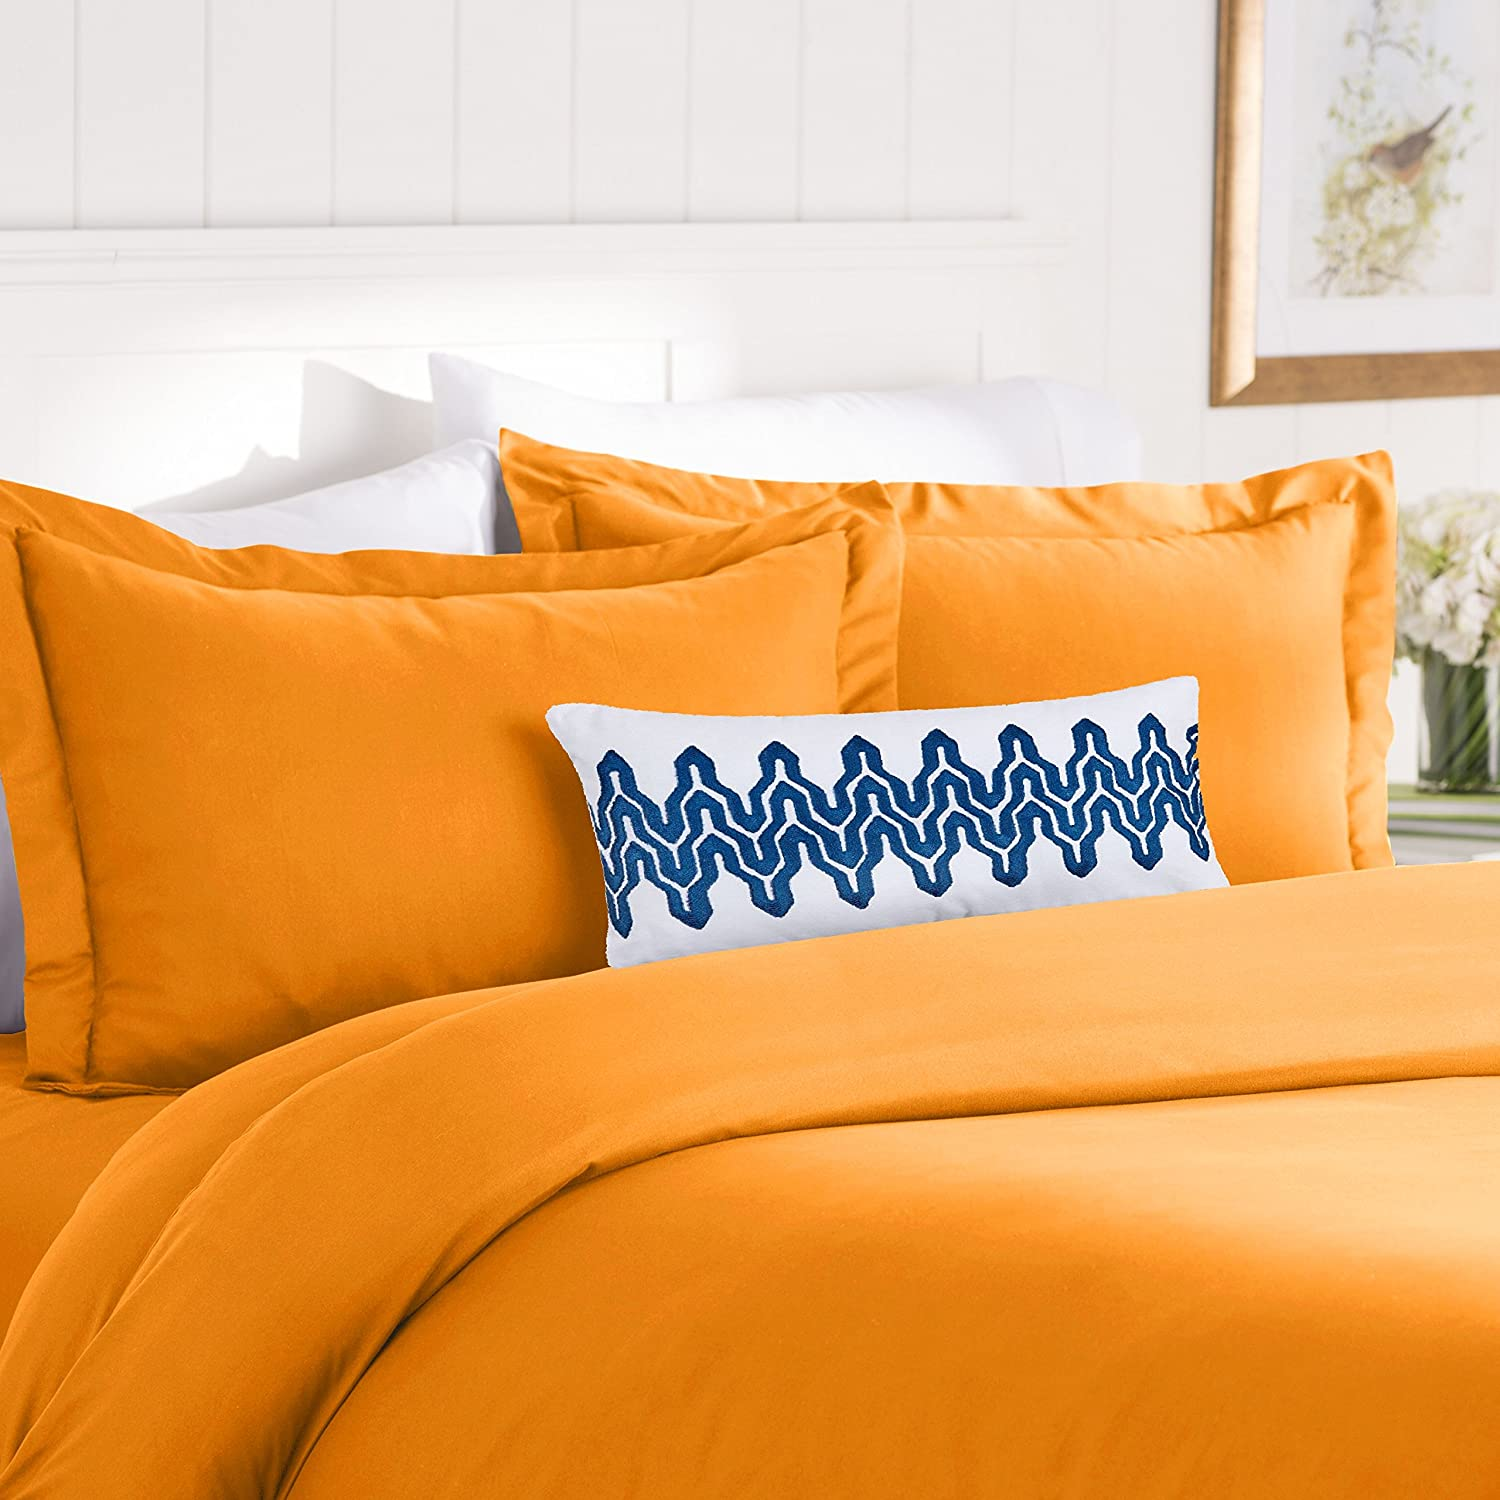 3-Piece Duvet Cover Set, Full/Queen, Elite Orange